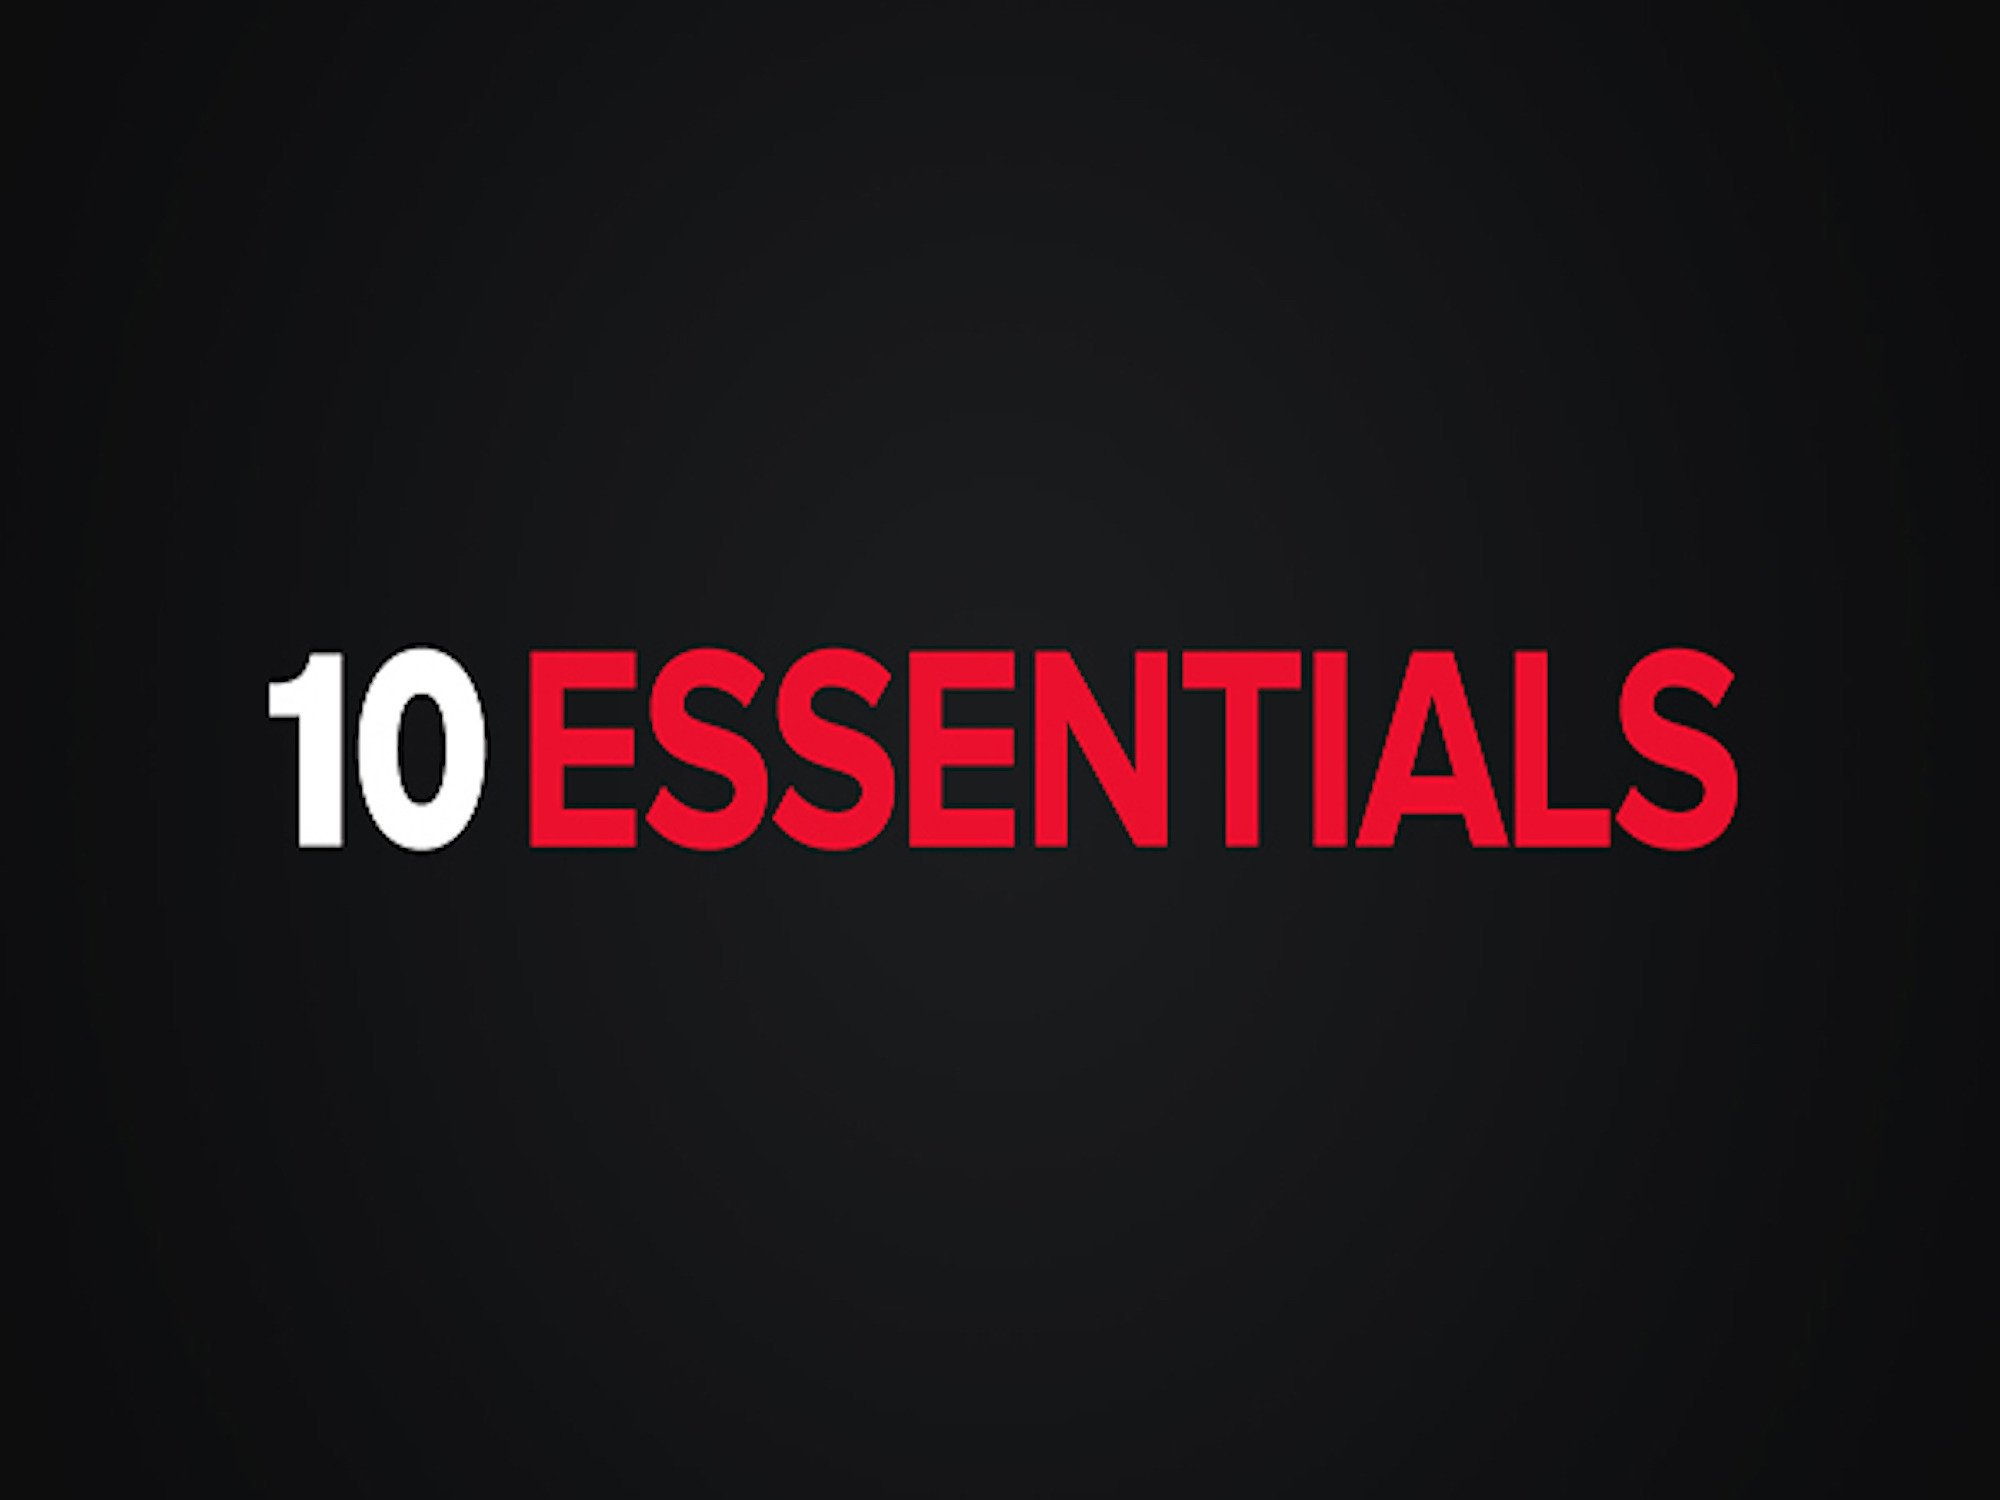 10 Essentials - Season 1